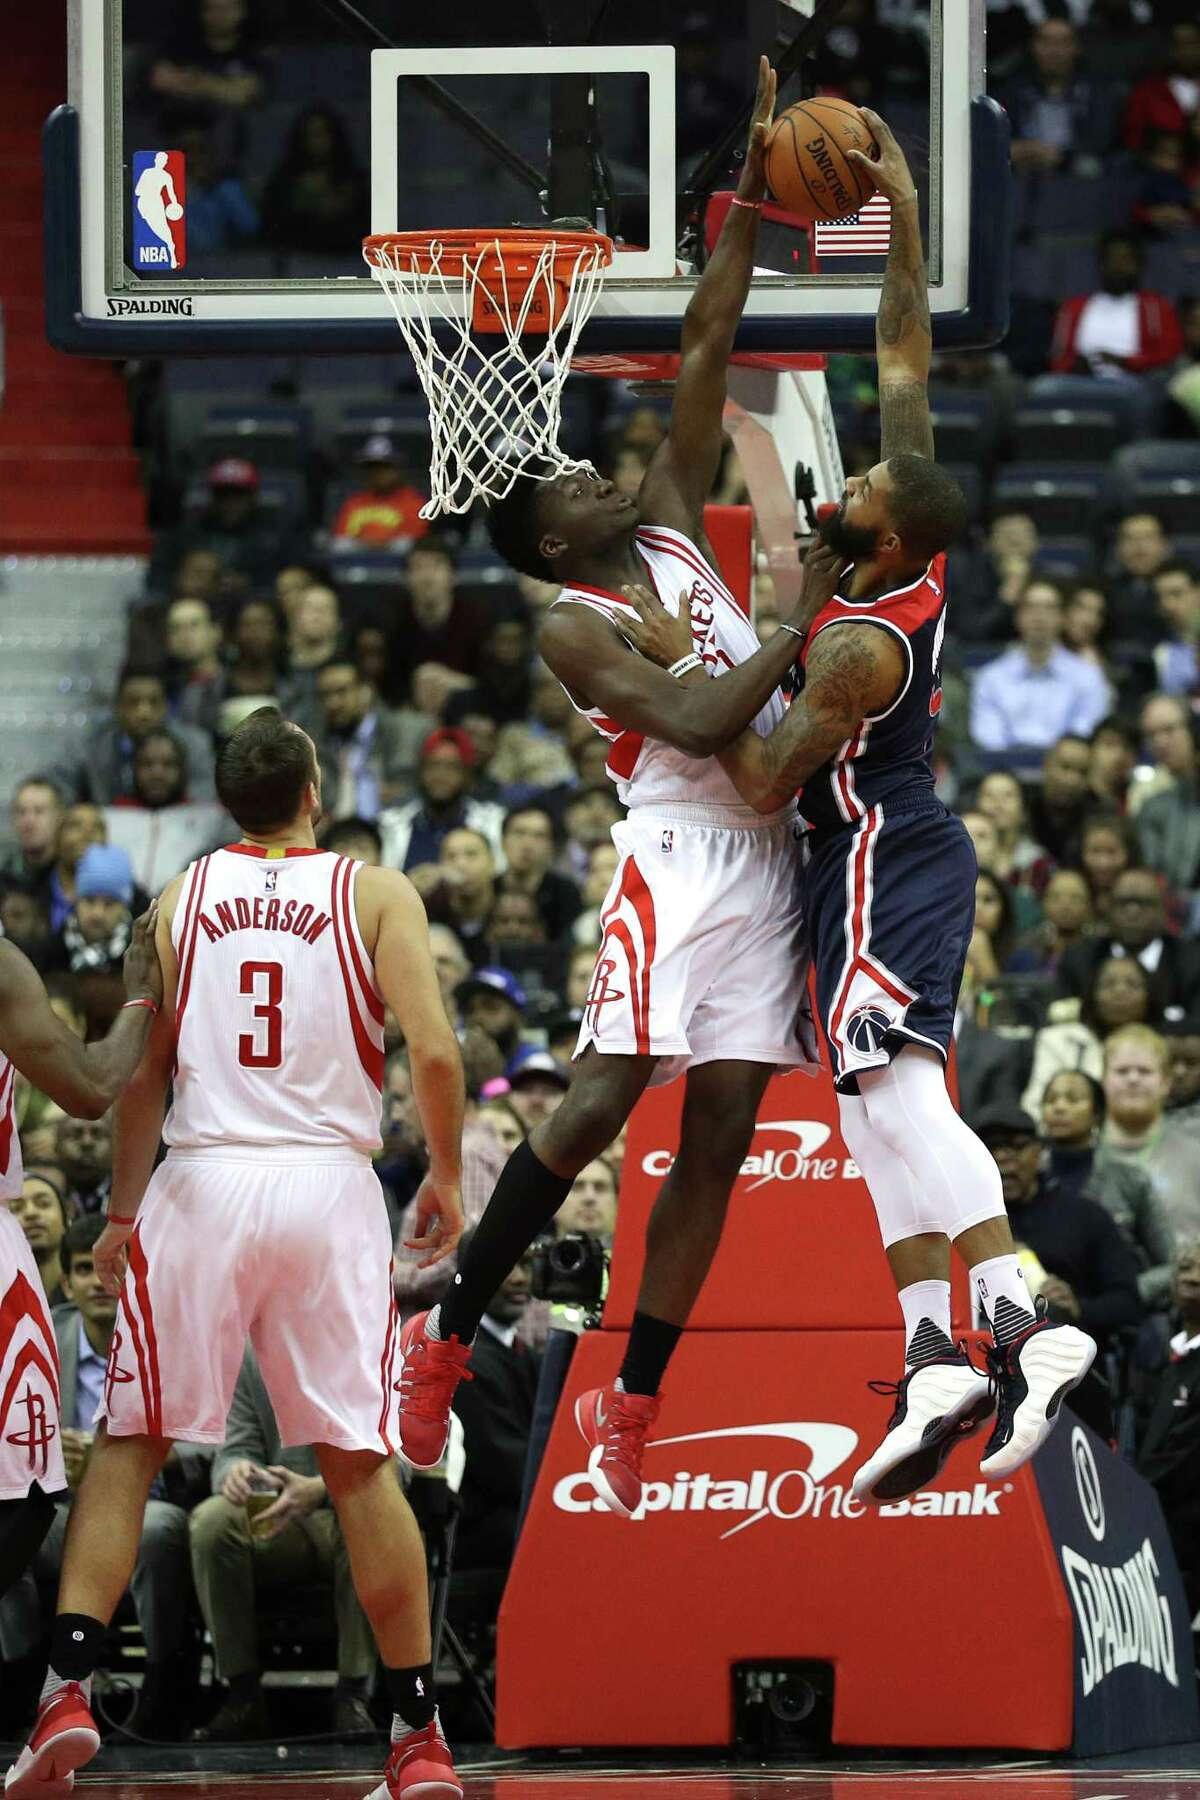 WASHINGTON, DC - NOVEMBER 07: Markieff Morris #5 of the Washington Wizards has a shot blocked by Clint Capela #15 of the Houston Rockets during the first half at Verizon Center on November 7, 2016 in Washington, DC. NOTE TO USER: User expressly acknowledges and agrees that, by downloading and or using this photograph, User is consenting to the terms and conditions of the Getty Images License Agreement.